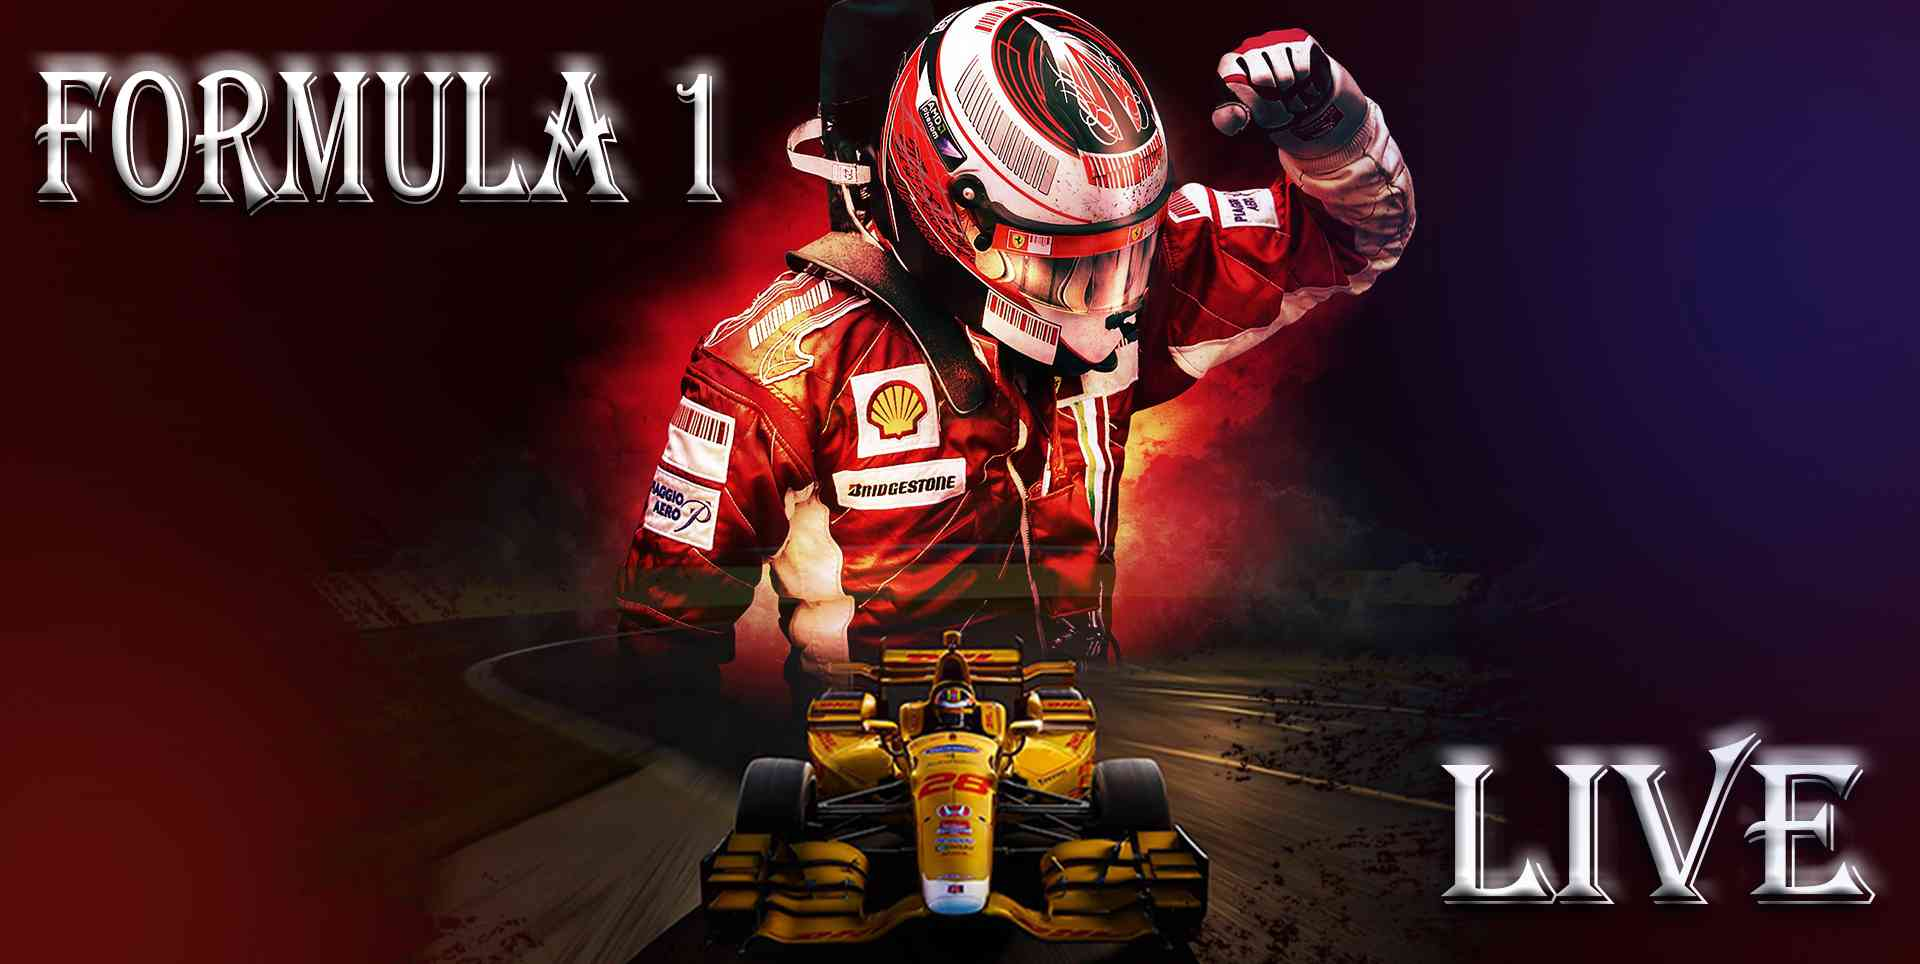 Mexican Grand Prix of Formula 1 Live Streaming